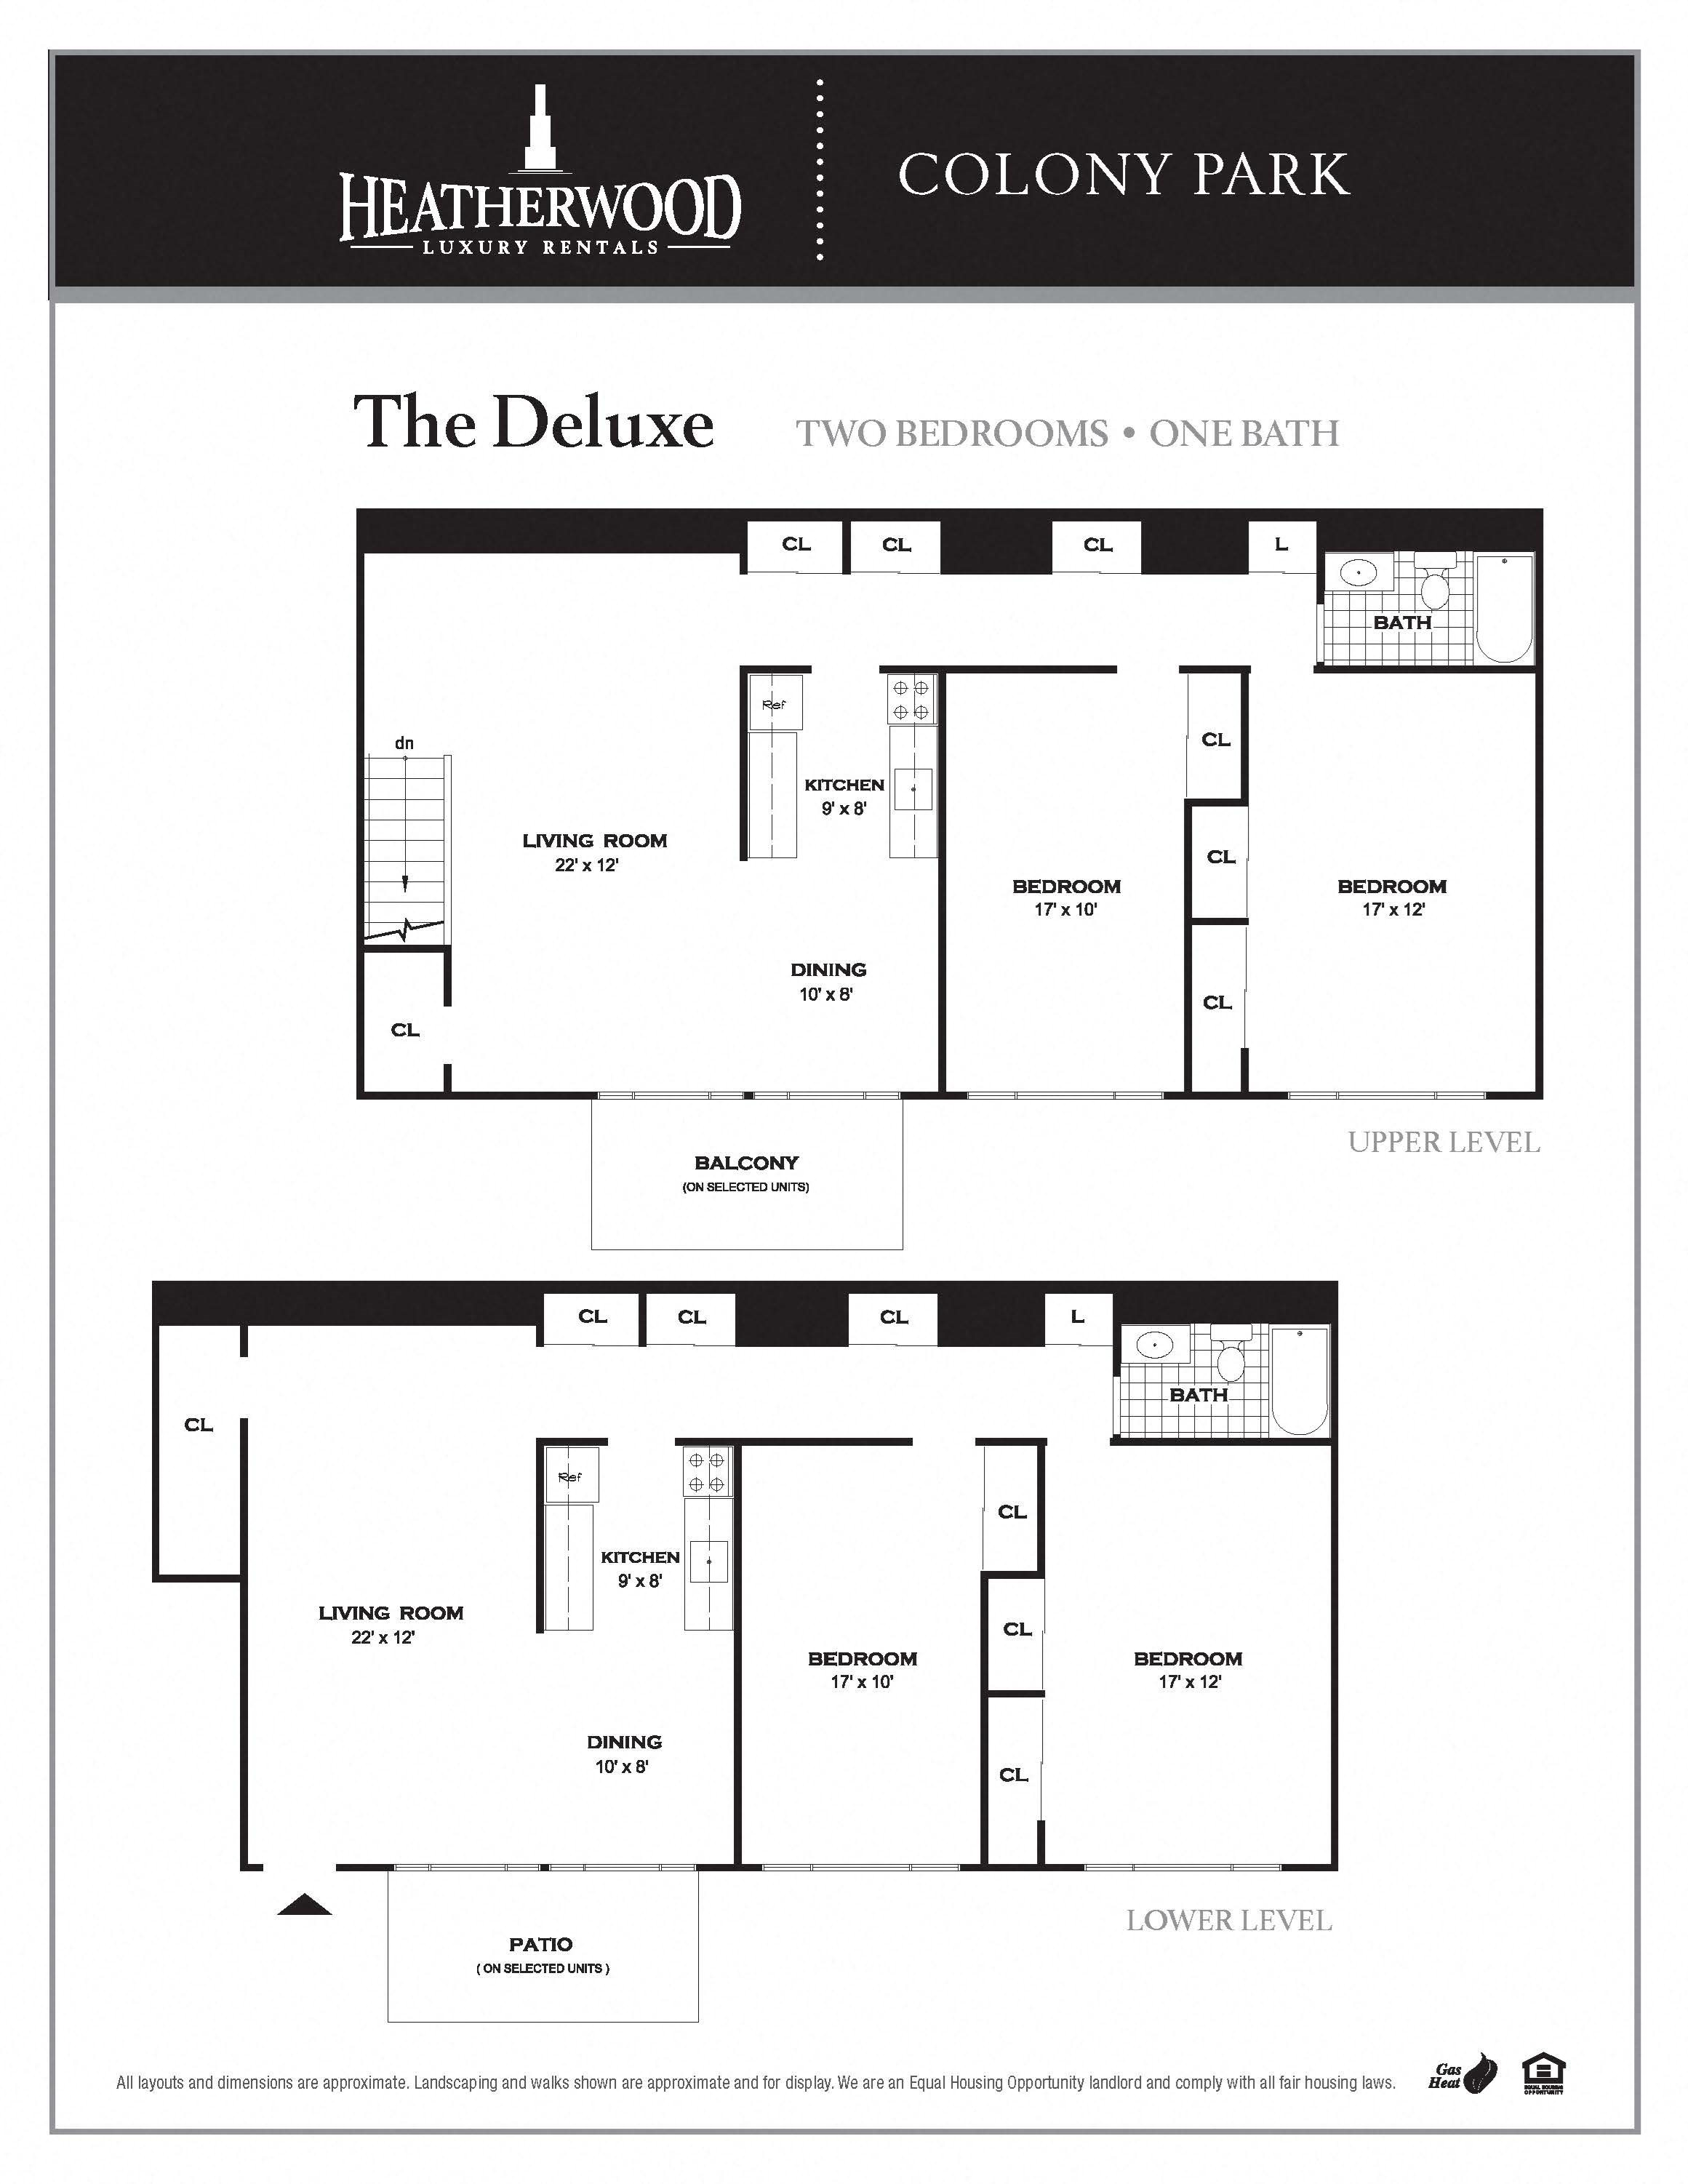 The Deluxe Floor Plan 5